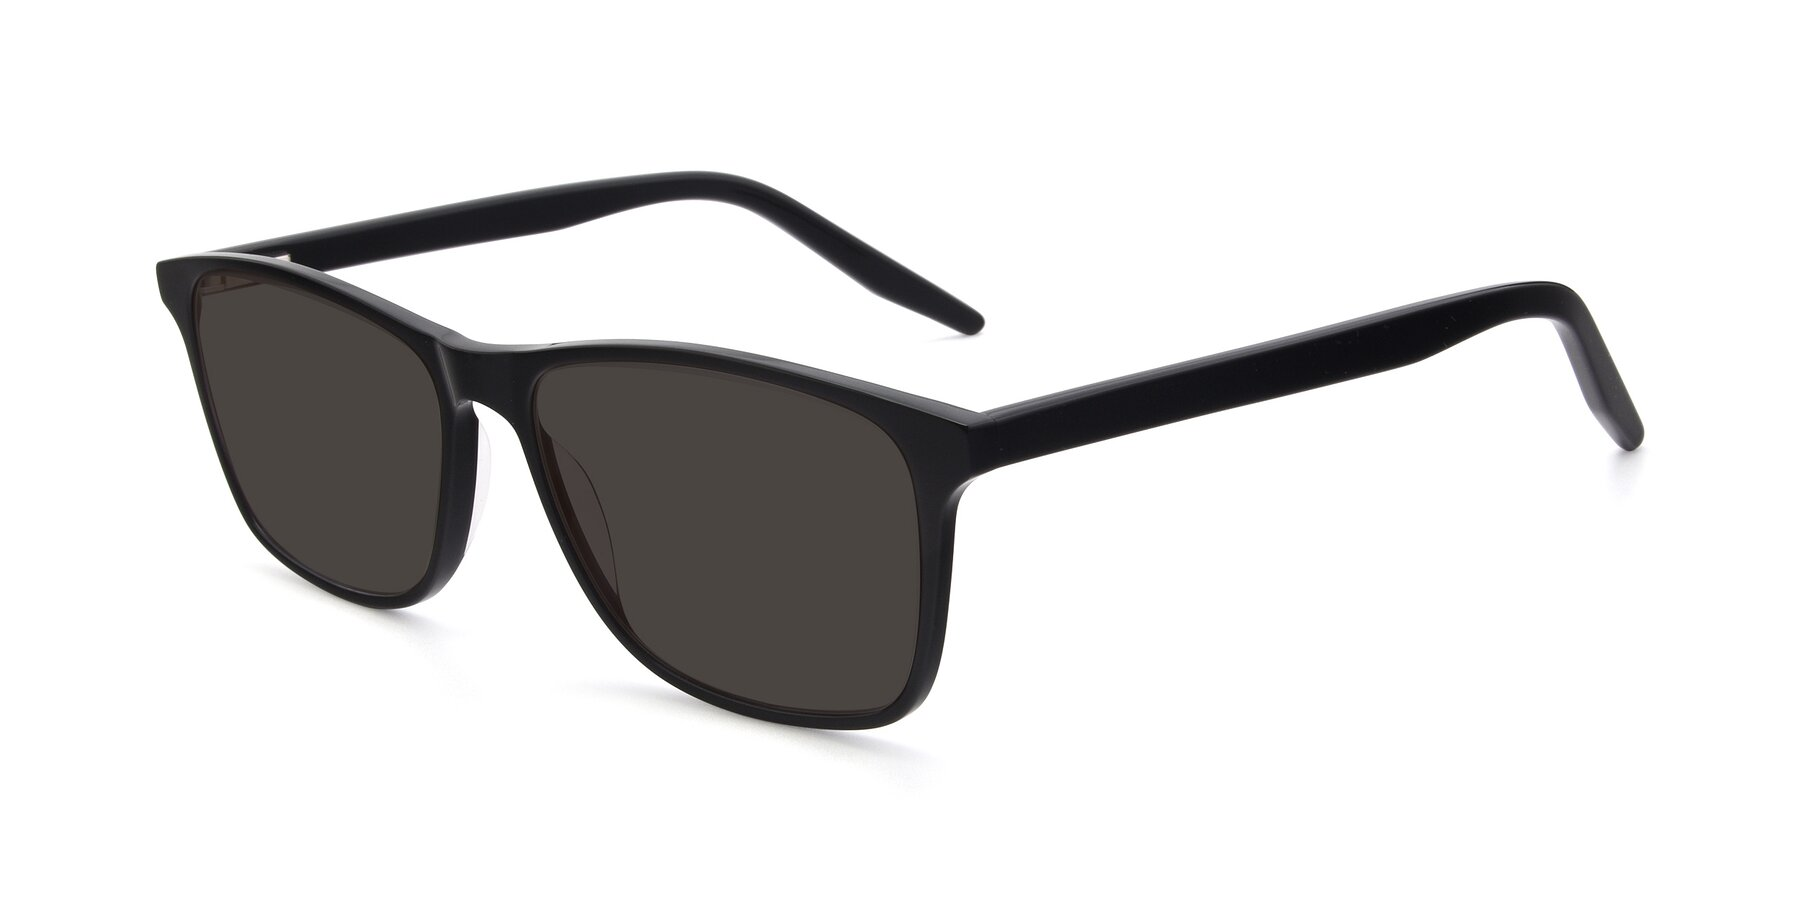 Angle of 17500 in Black with Gray Tinted Lenses